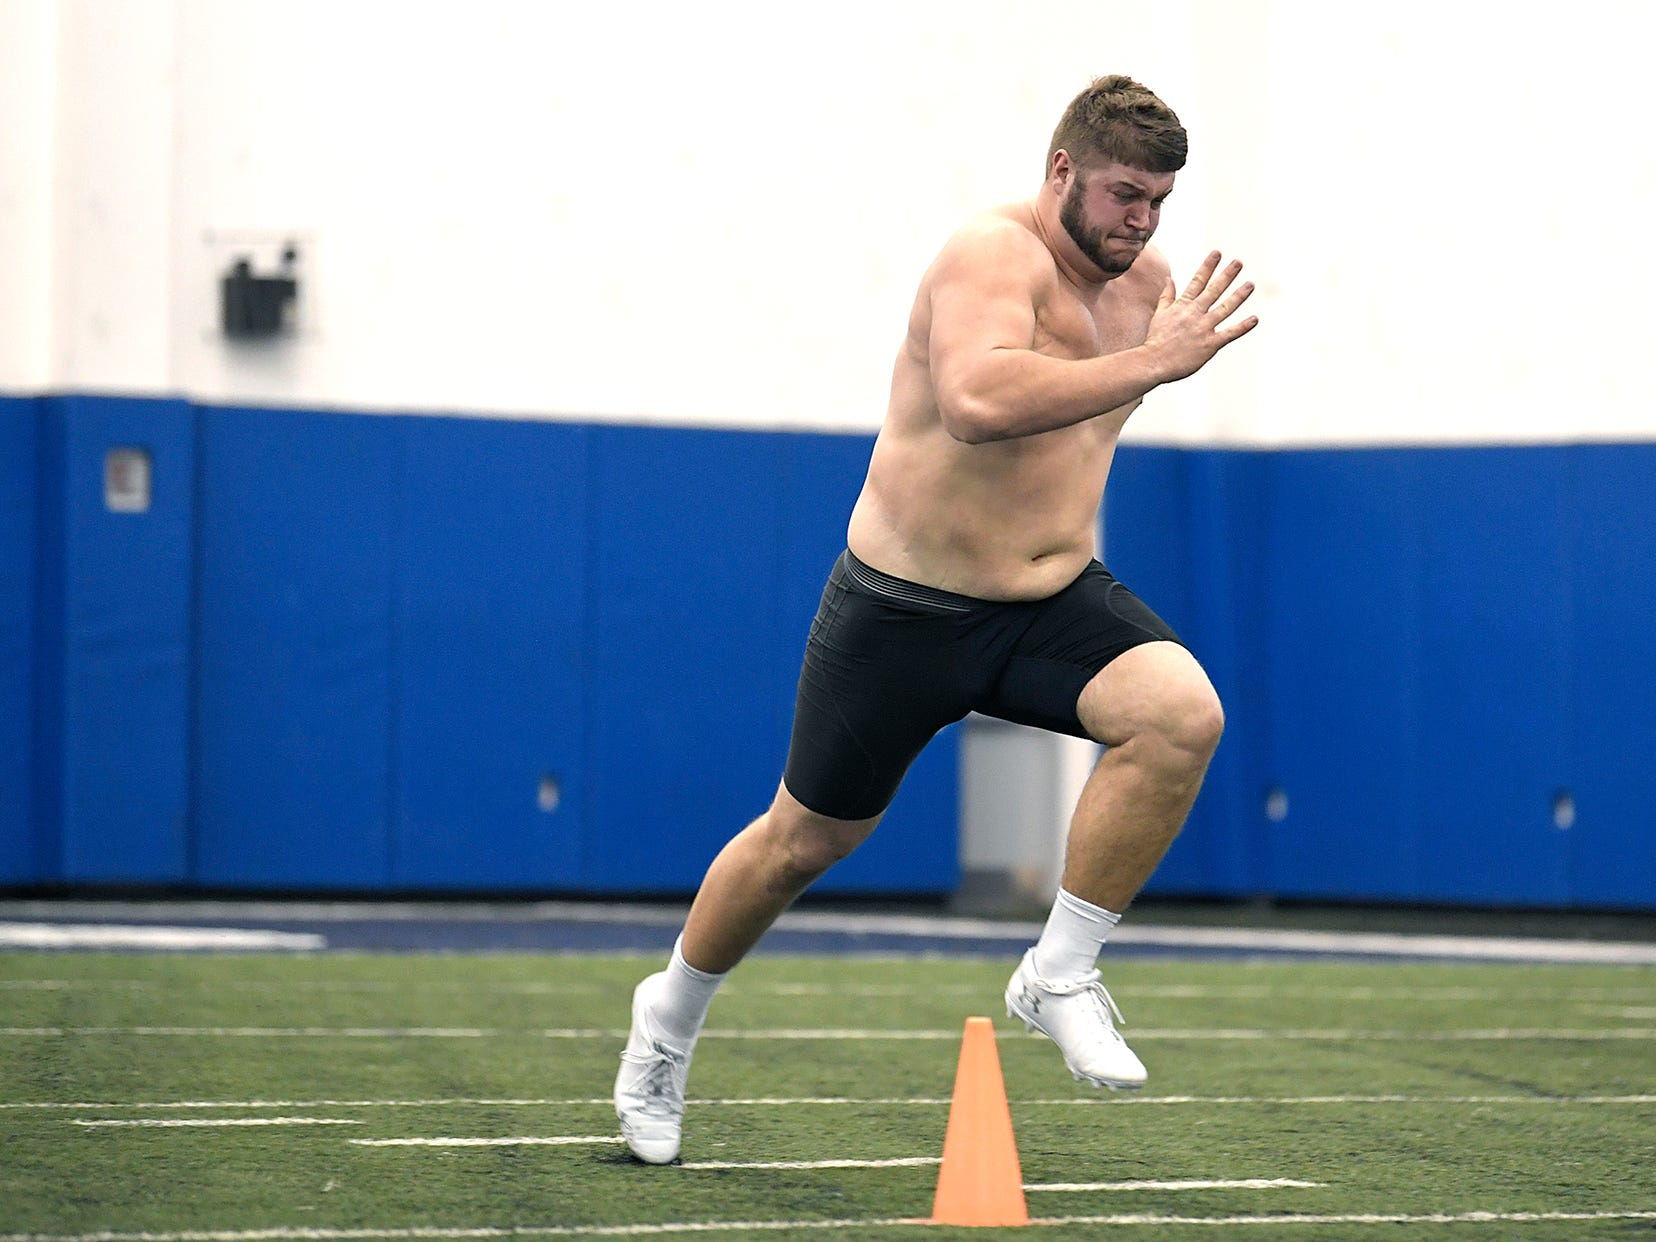 MTSU's Chandler Brewer runs the 40-yard dash during NFL Pro Day which was held at TSU in Nashville on Monday, March 11, 2019.